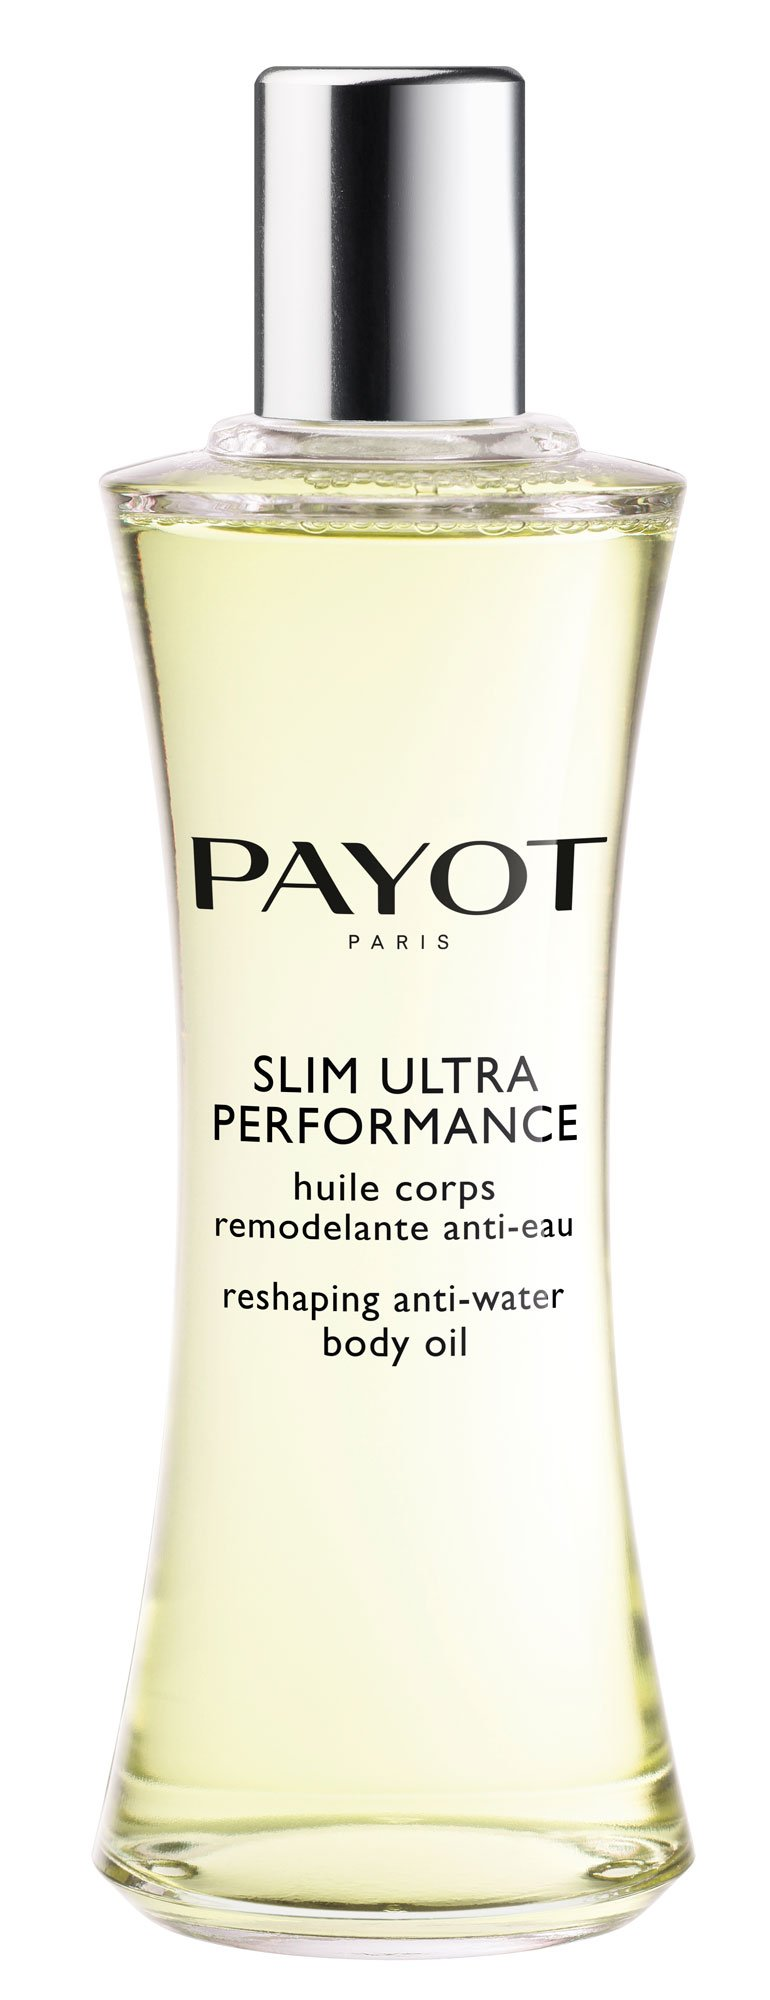 payot-slim-ultra-performance-cosmetics-online